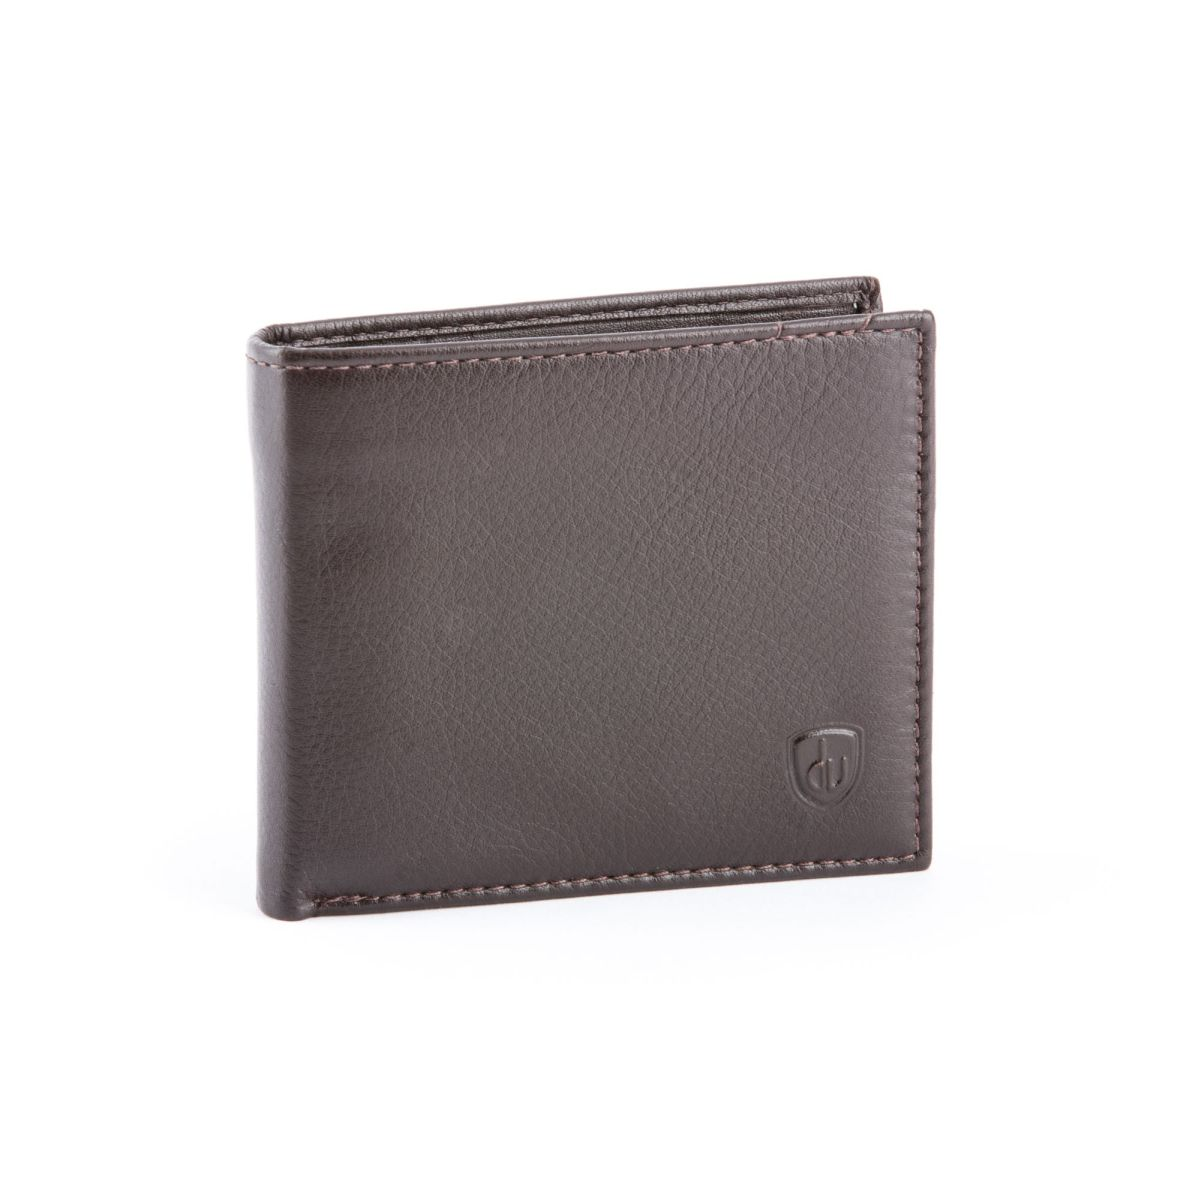 Compact Leather Wallet With Coin Pocket - Dark Brown